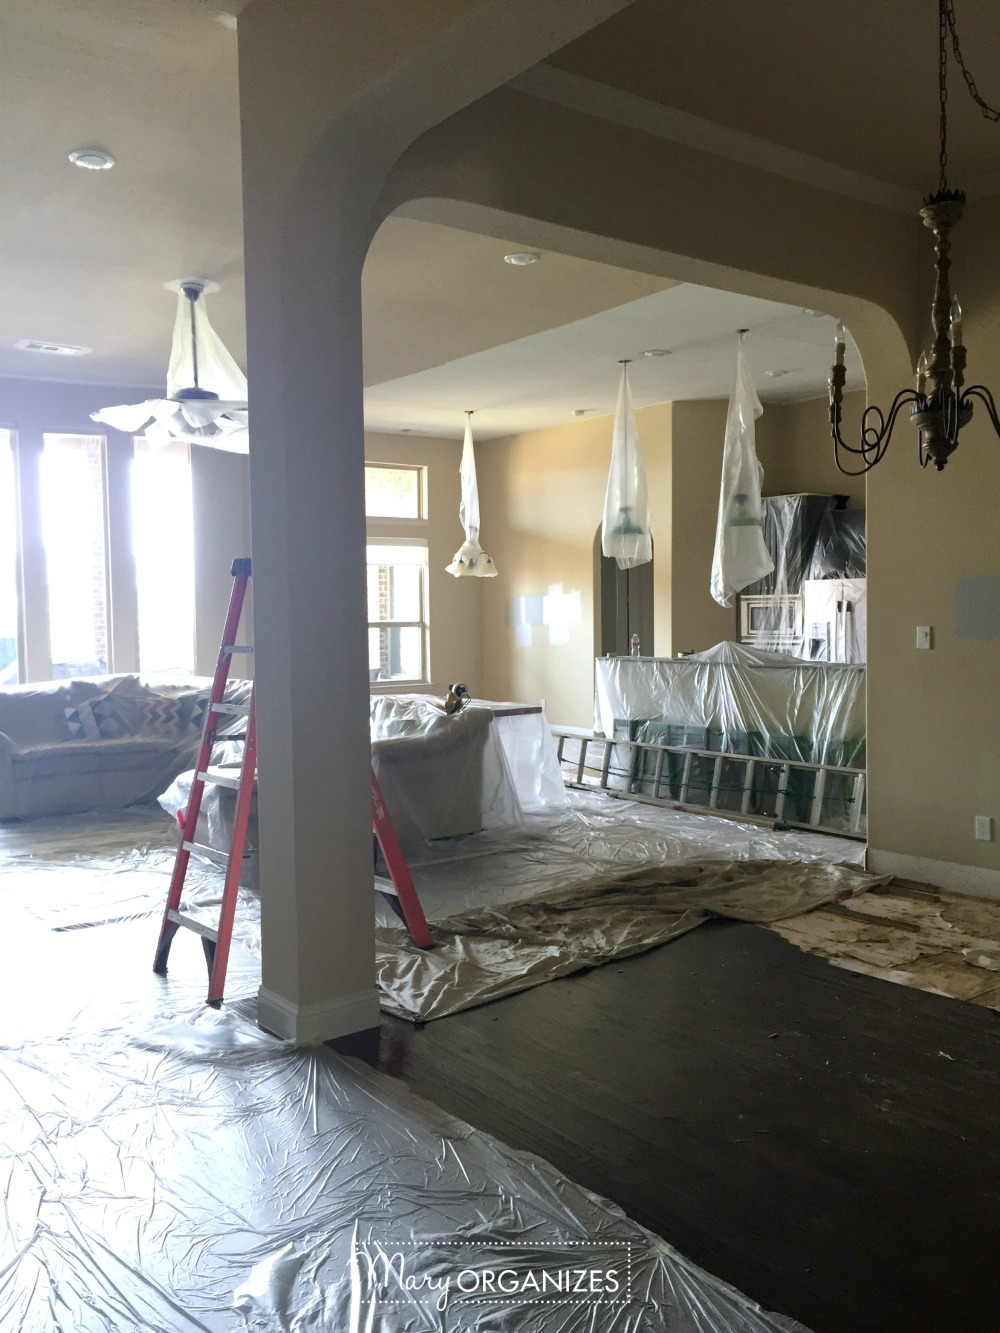 renovation-phase-1-materials-and-painting-5